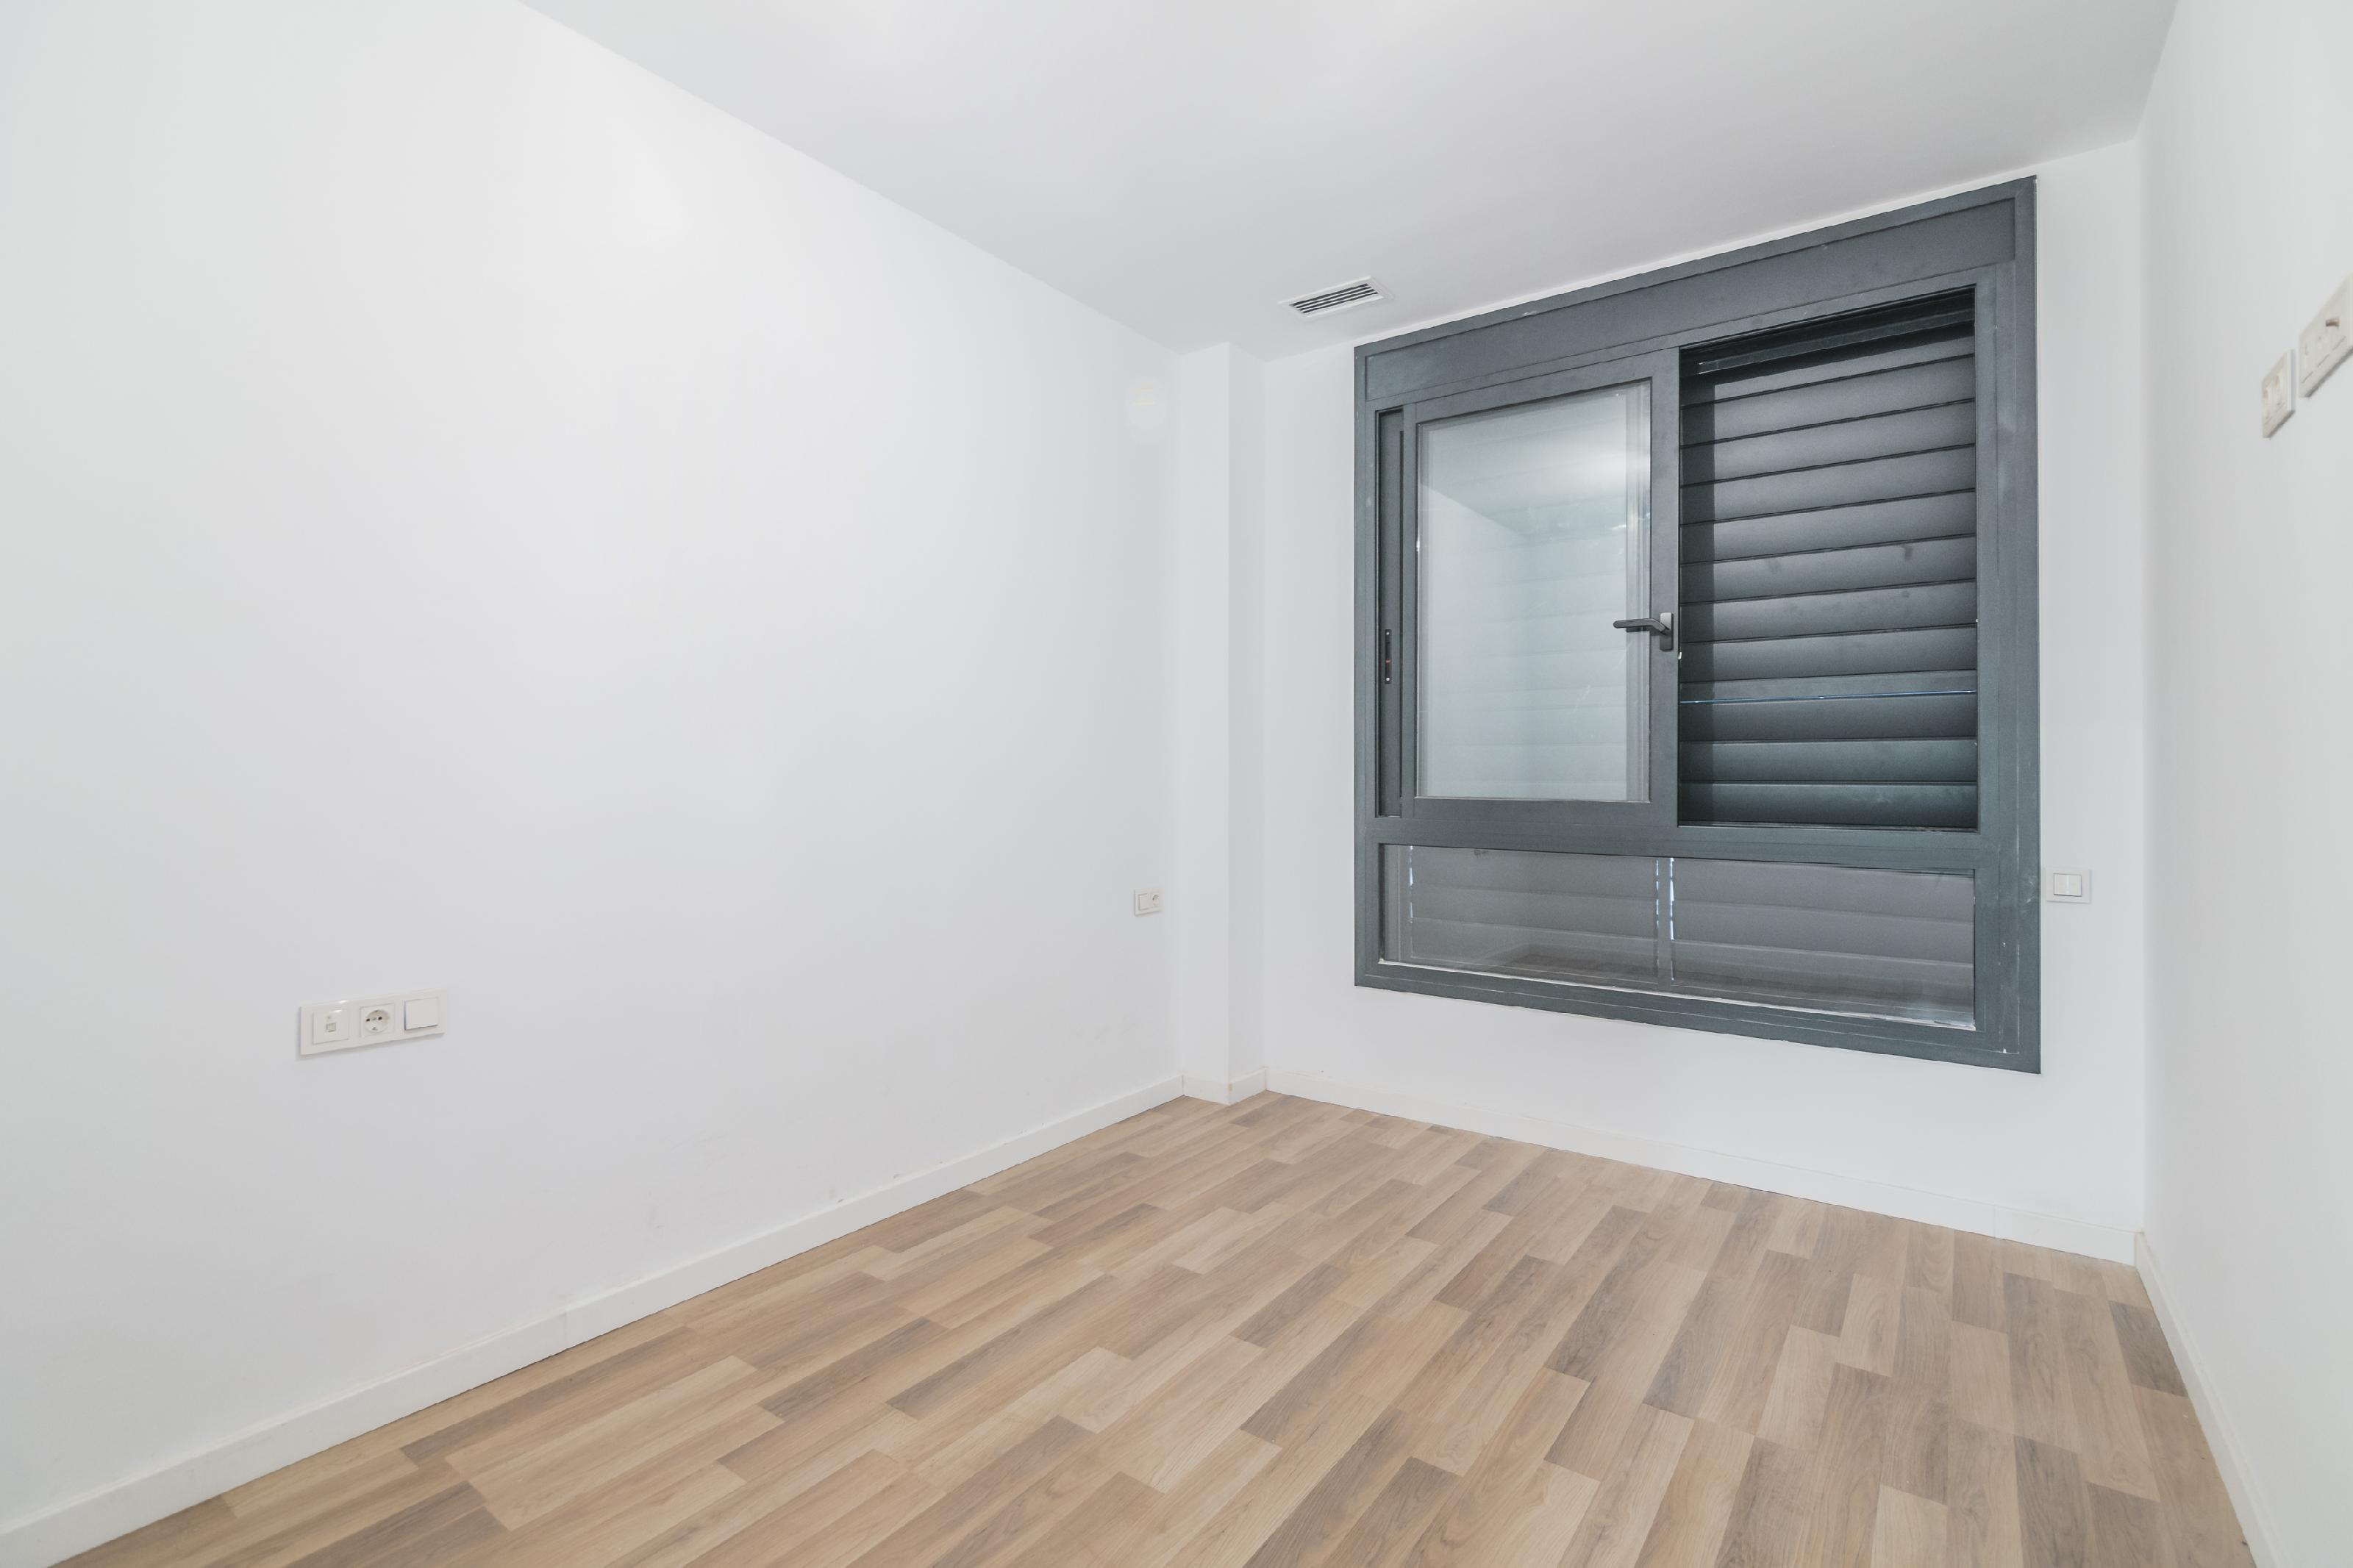 220649 Apartment for sale in Sarrià-Sant Gervasi, Sant Gervasi-Galvany 5